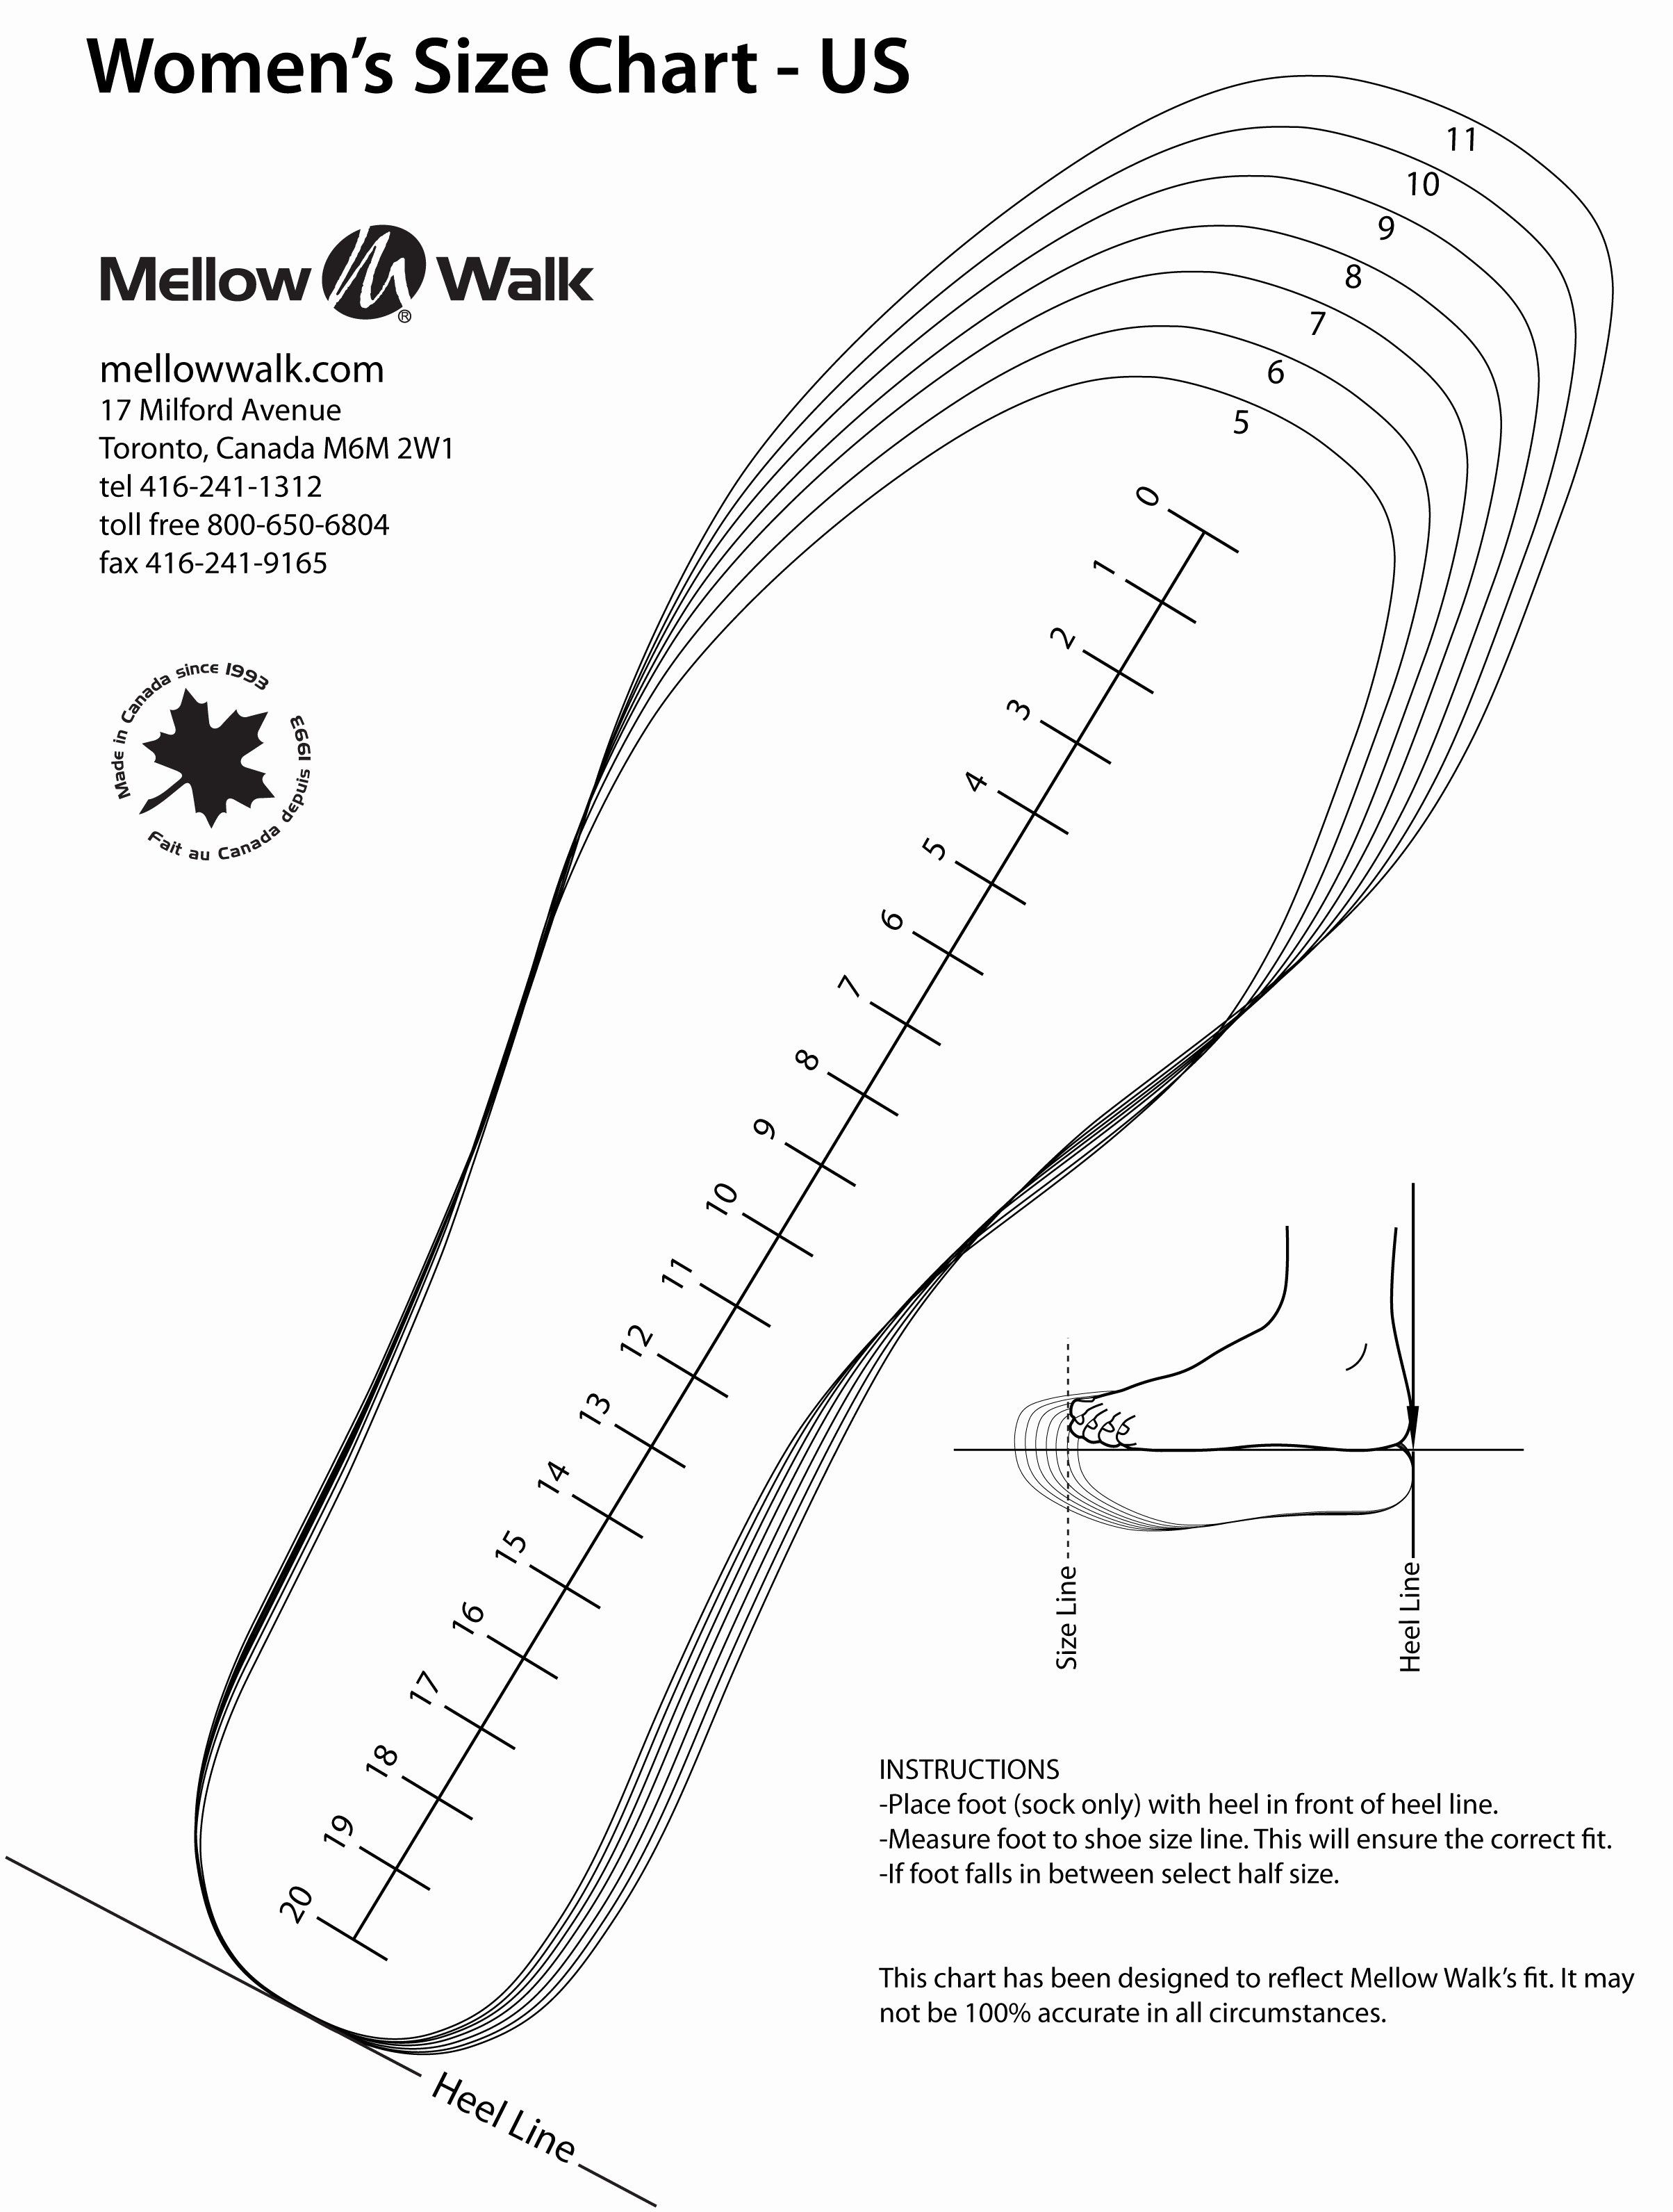 Foot Measurement Chart Printable Best Of Getting The Perfect Mellow Walk Fit Is As Easy As 1 2 3 Moccasin Pattern Baby Moccasin Pattern Shoe Chart